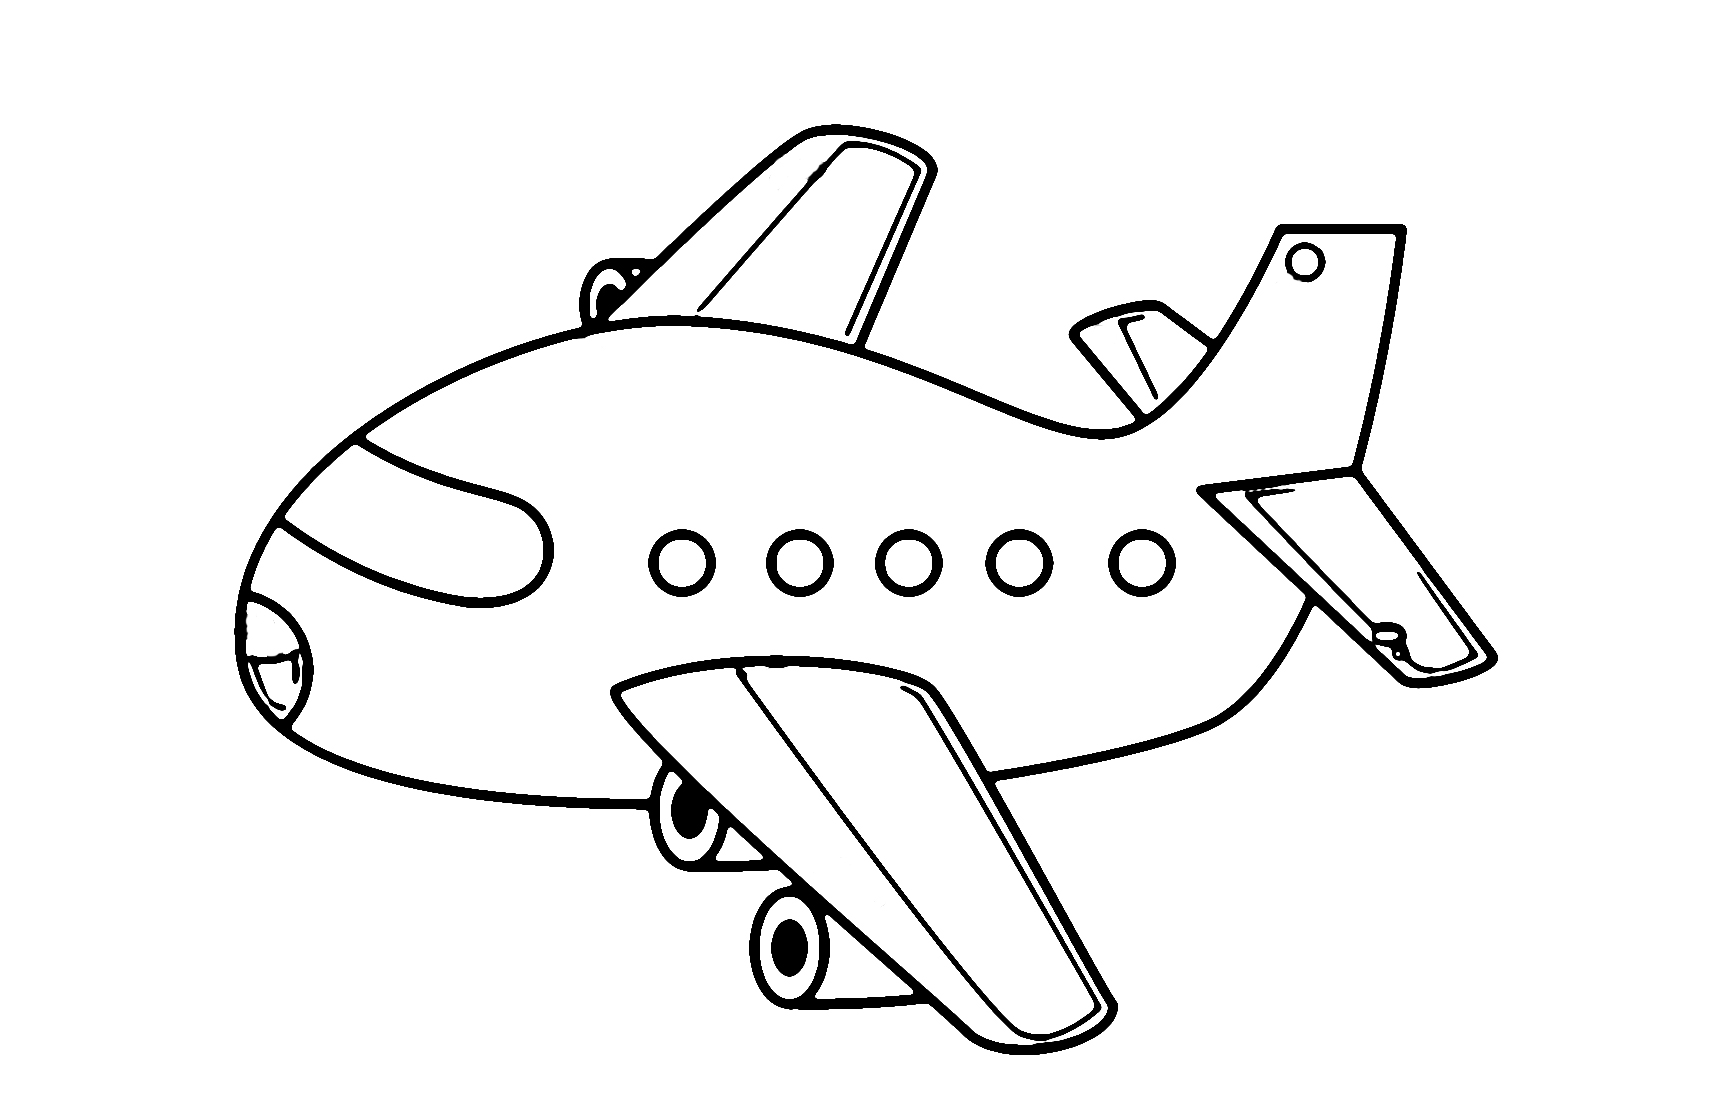 jet car coloring pages fighter jet coloring pages clipart panda free clipart car coloring pages jet